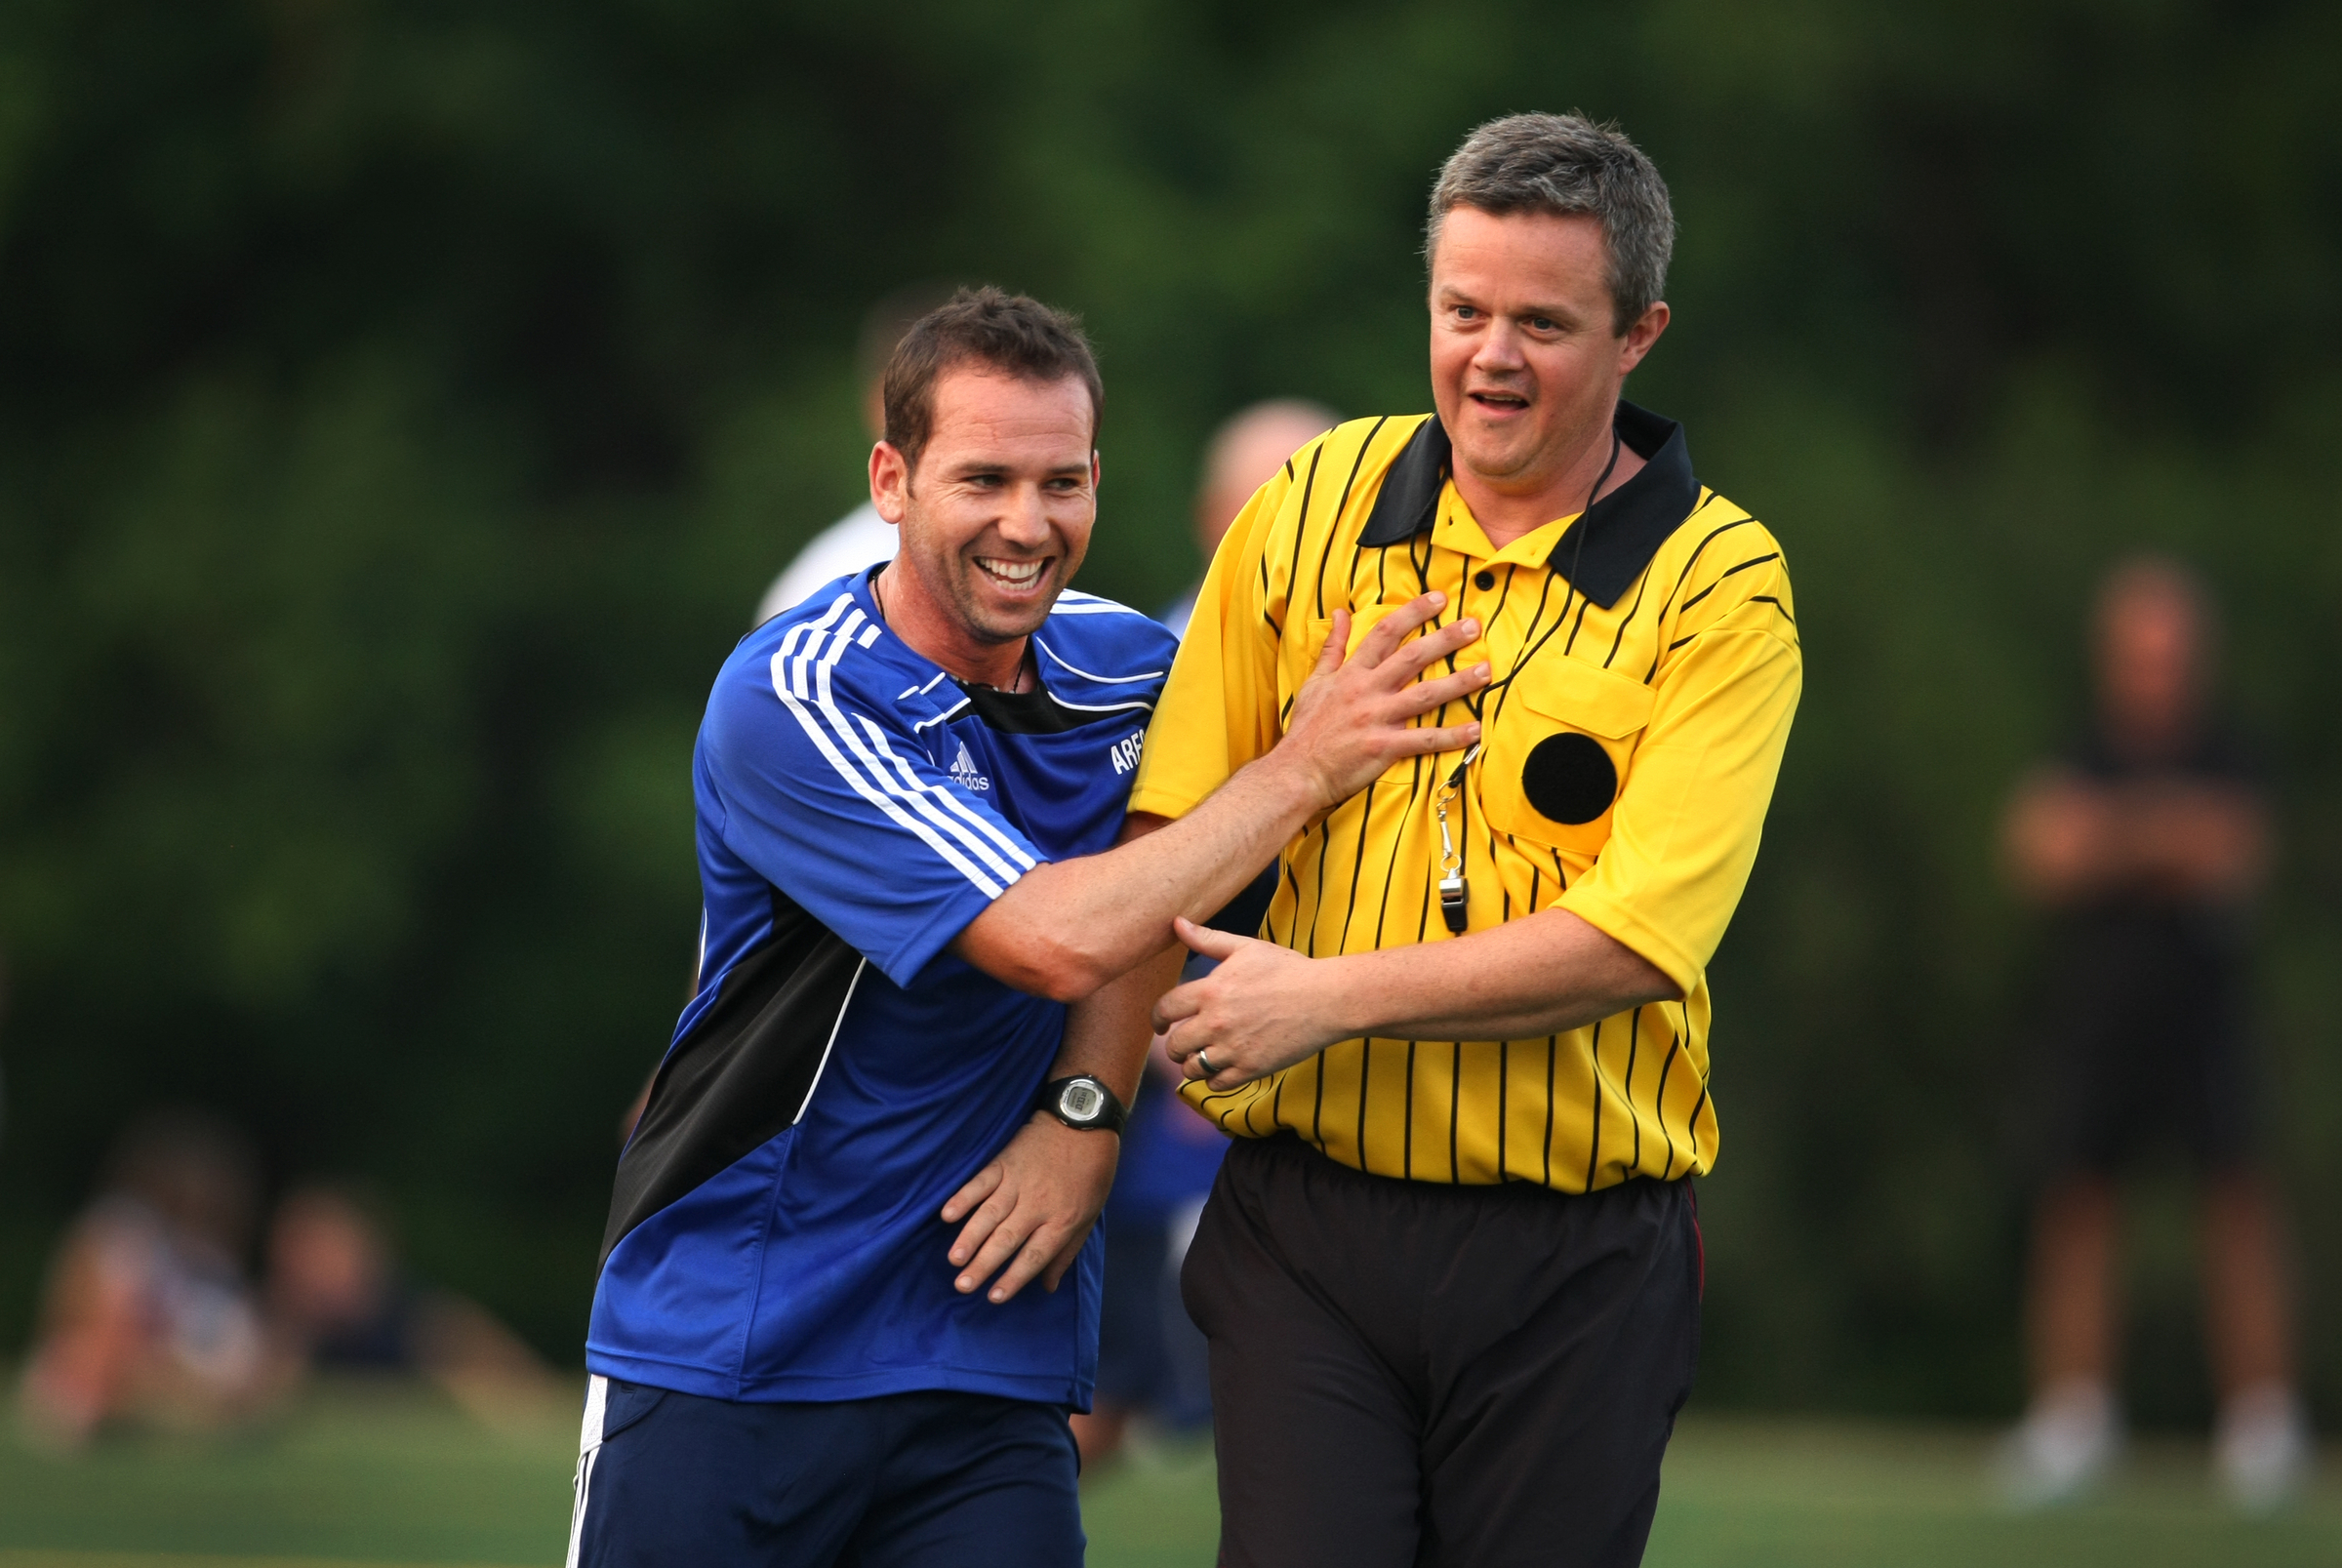 PGA Tour player, Sergio Garcia, jokes around with a referee while playing soccer for the Airmail Rovers FC at Davis Par on Monday night before The Players Championship.